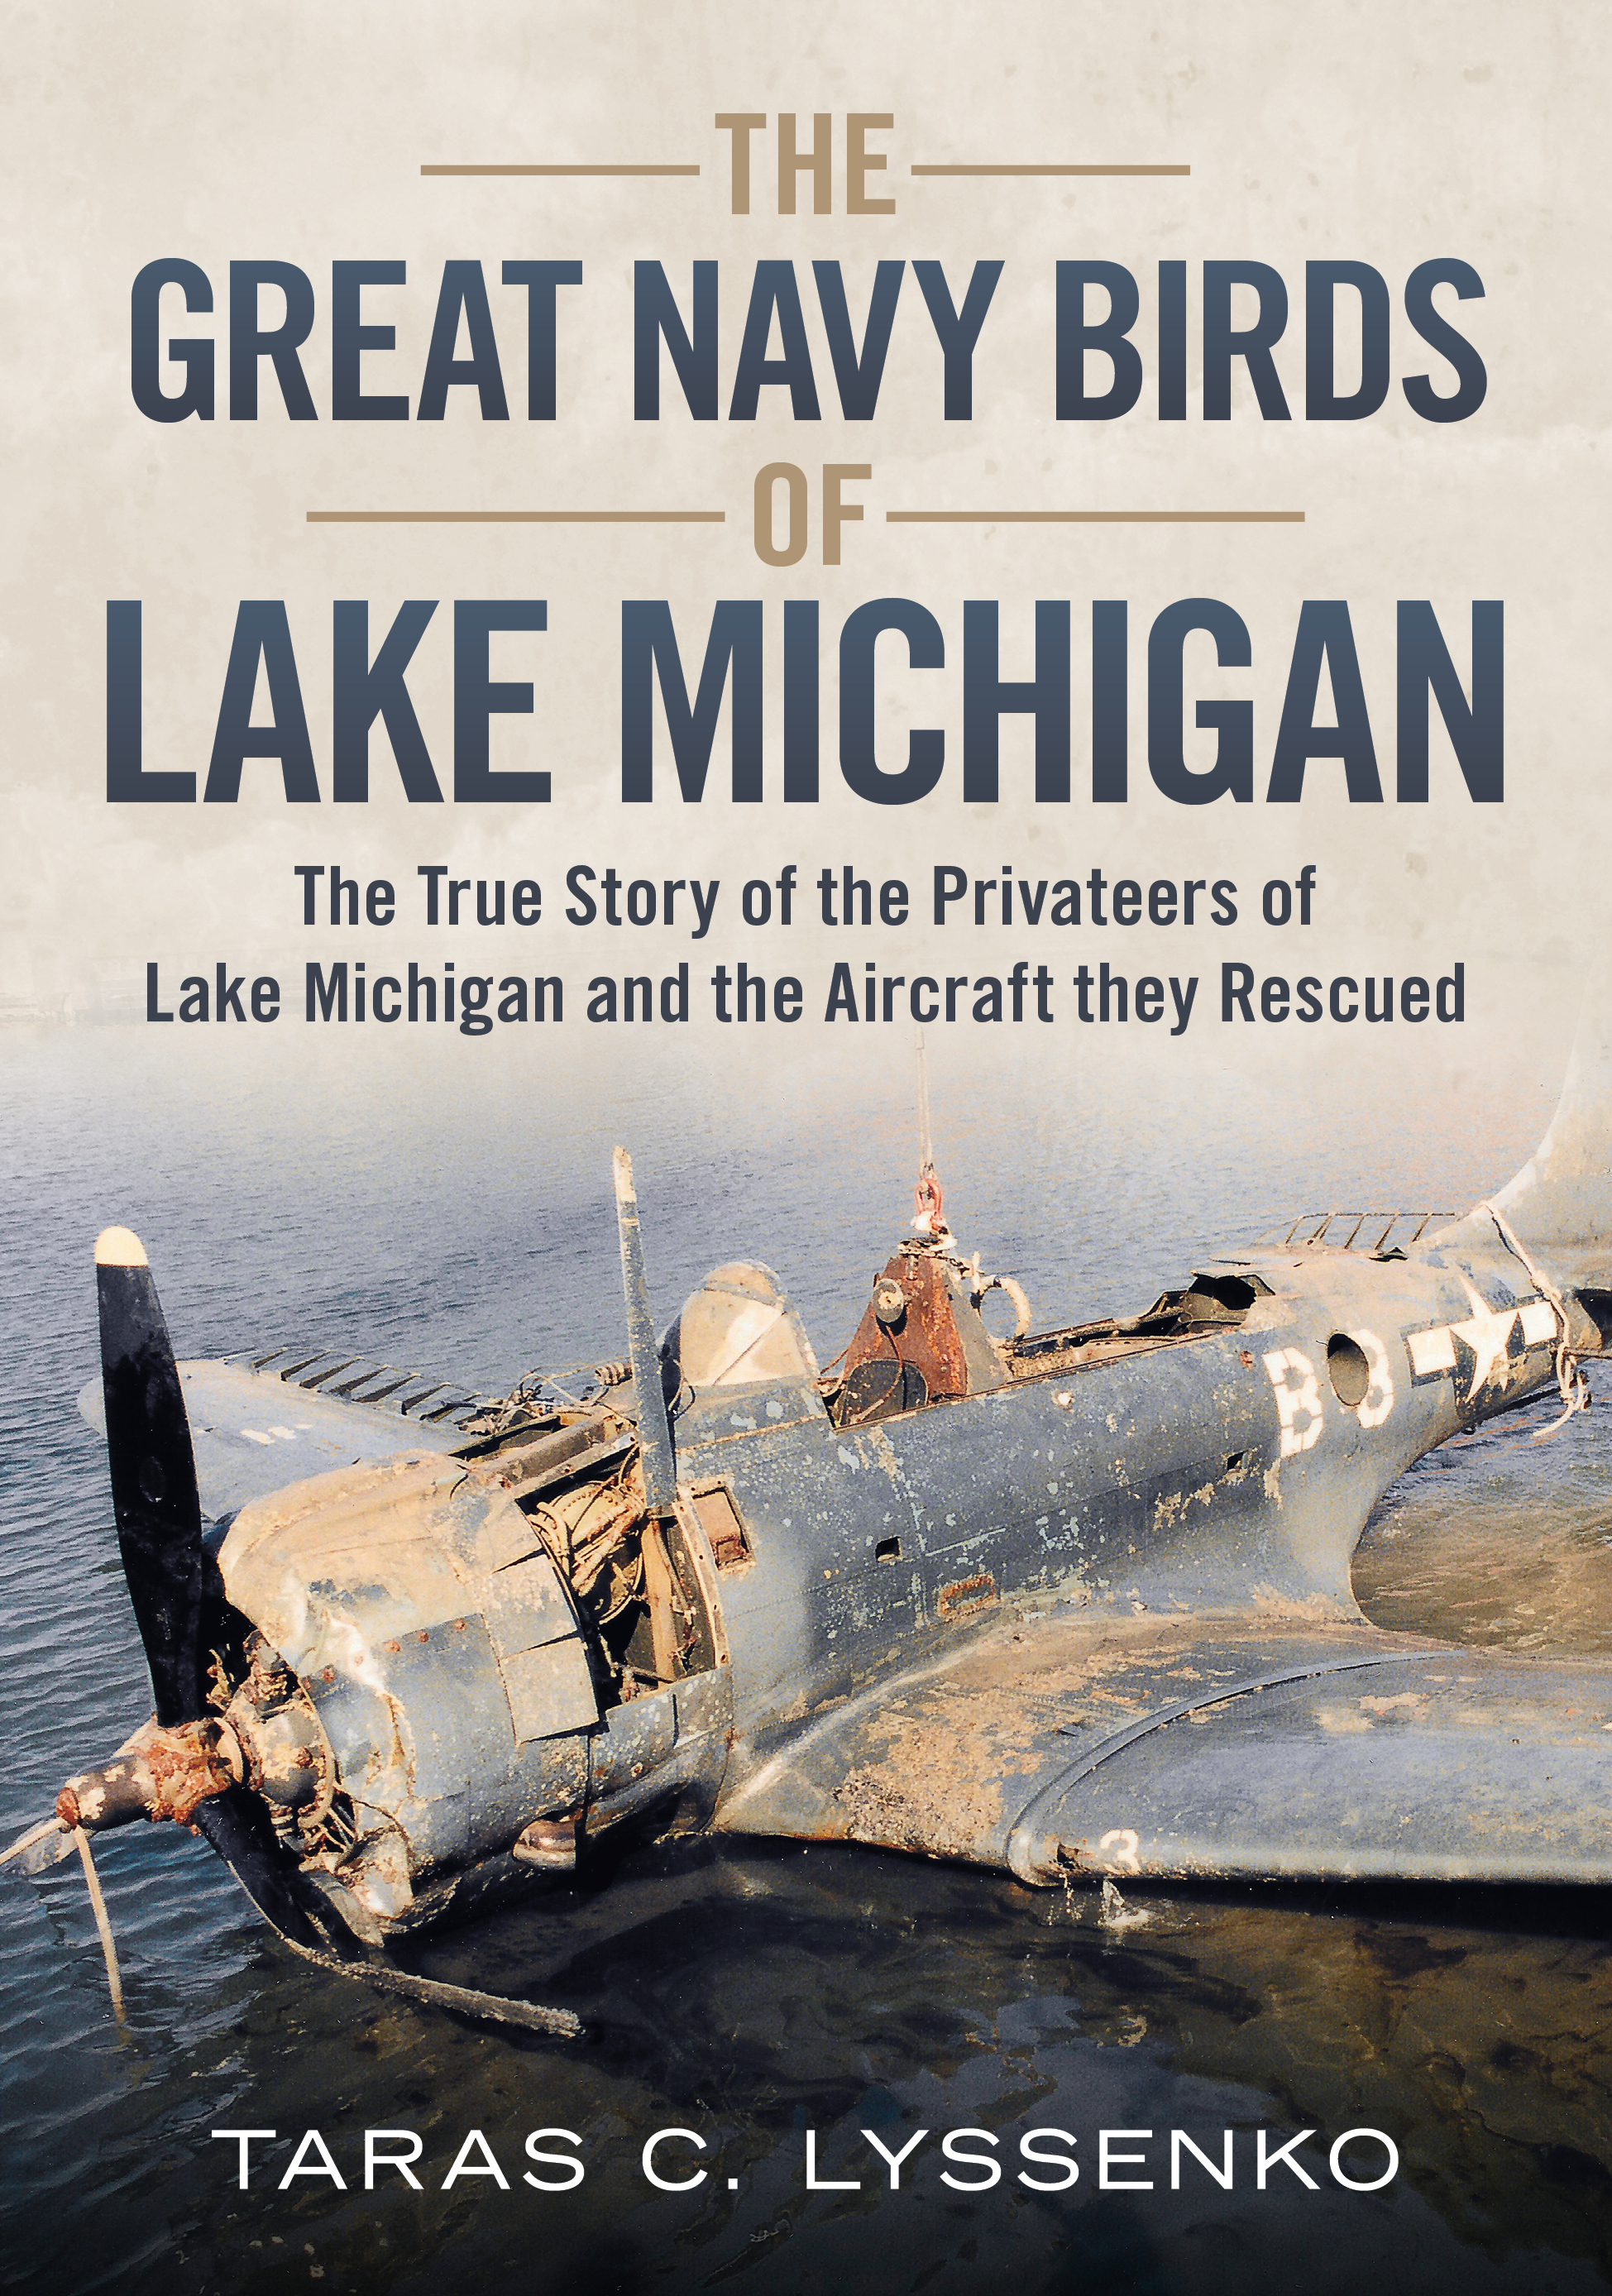 The Great Navy Birds of Lake Michigan: The True Story of the Privateers of Lake Michigan and the Aircraft They Rescued